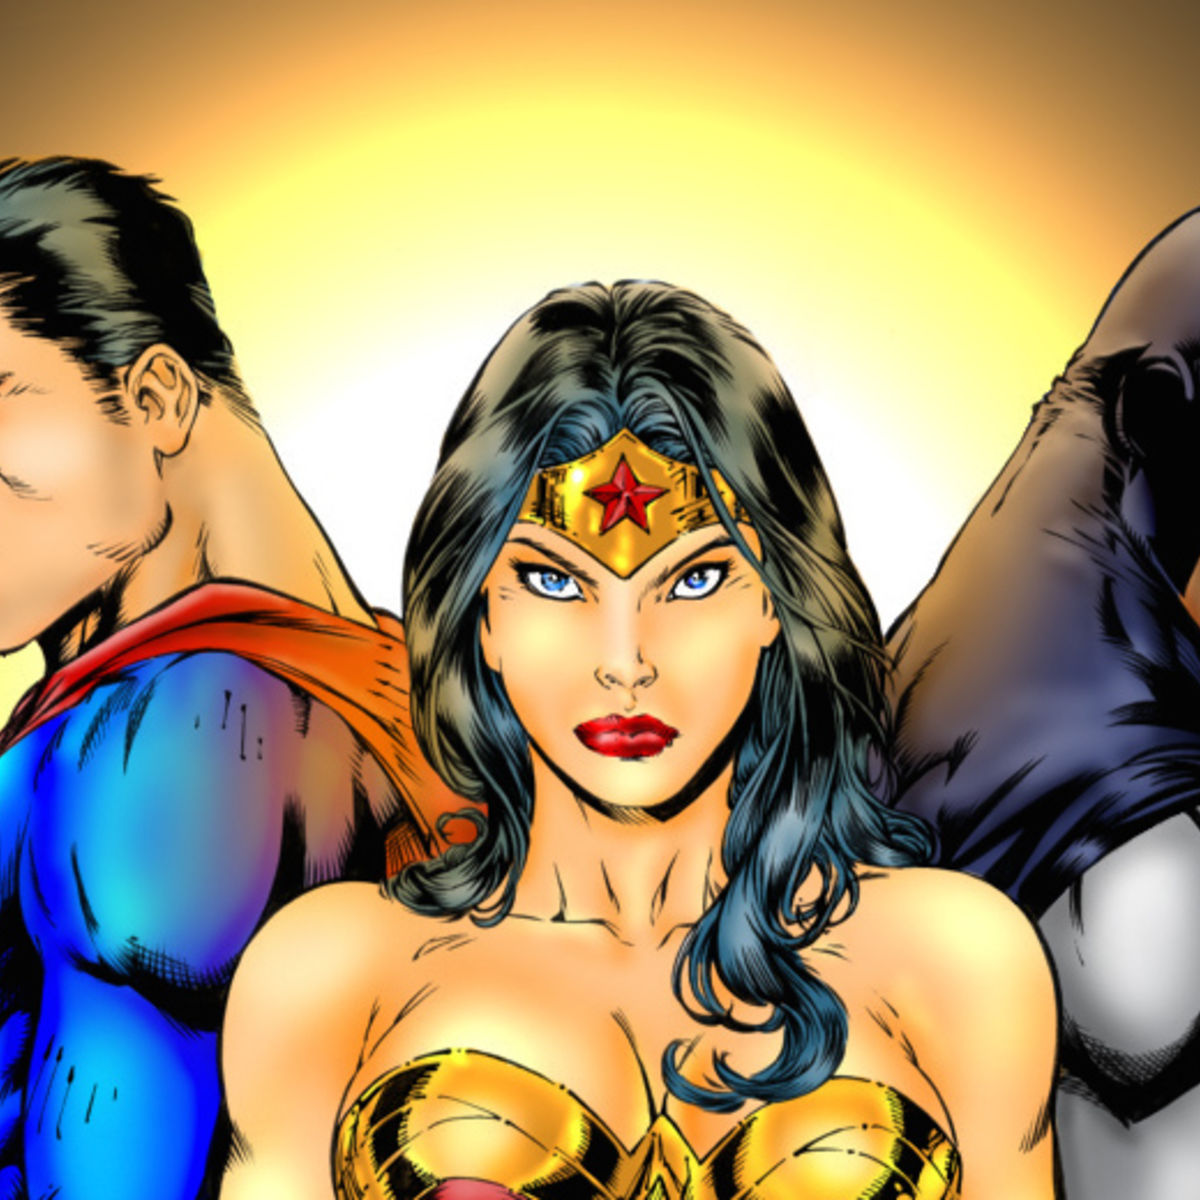 1945073-superman_wonder_woman_batman_by_sporedesigns.jpg